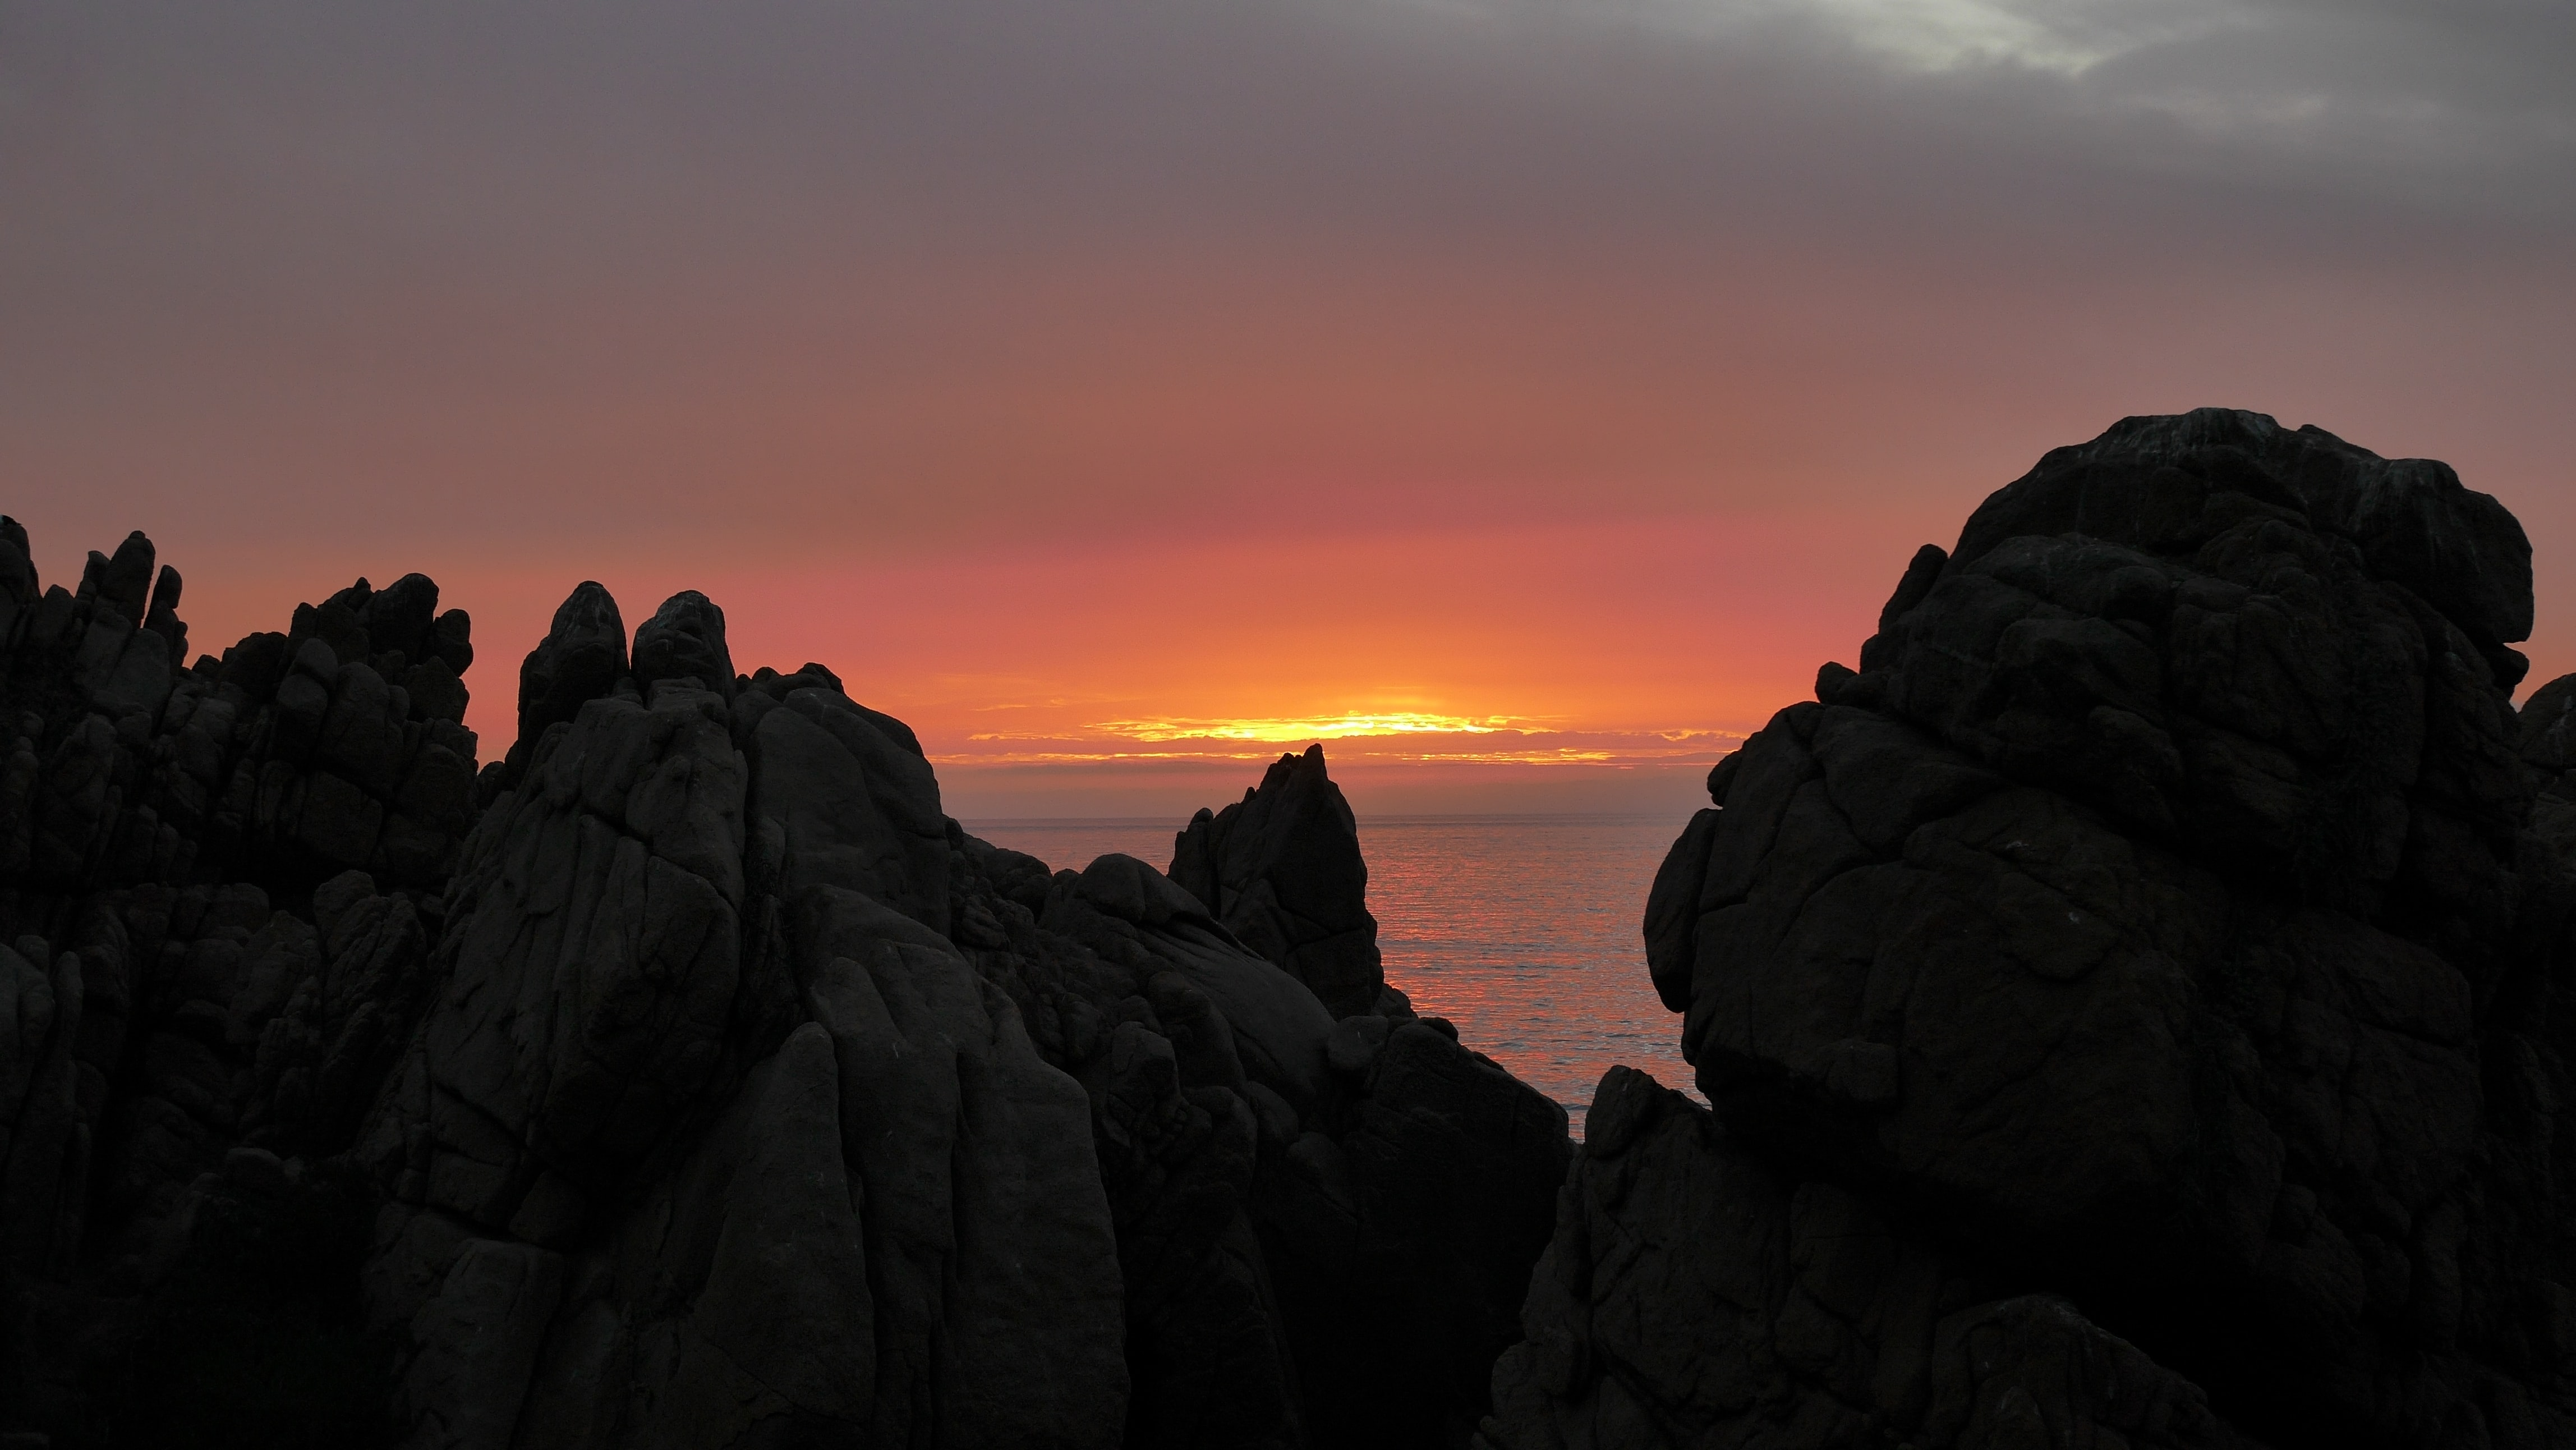 Large rocks and boulders by the sea, with view of the water and cloudy orange sunset between them